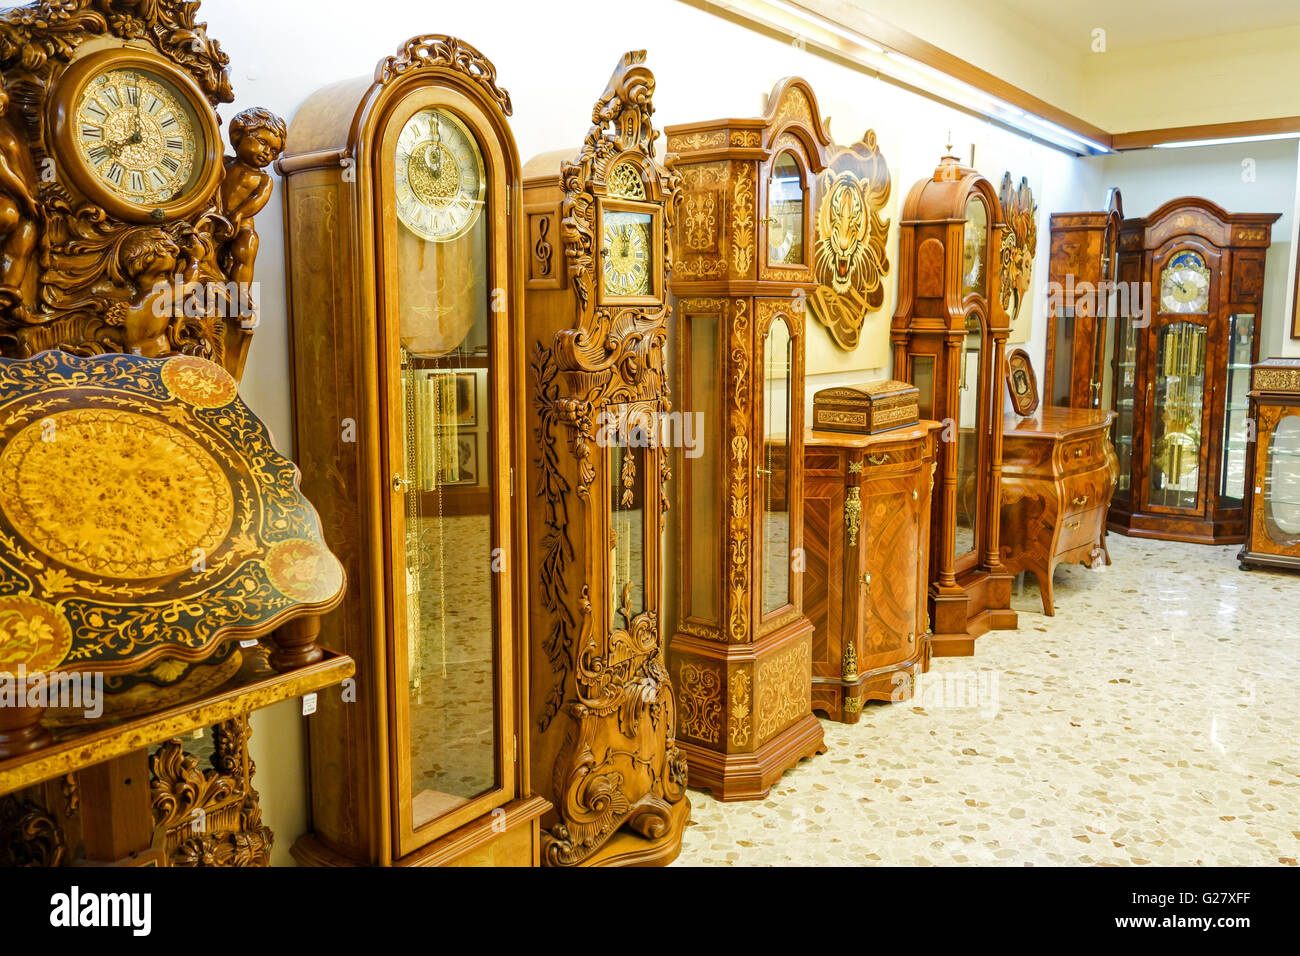 Charmant Ornate Wooden Inlaid Furniture Tables Clocks Etc For Sale In A Shop In  Sorrento Italy Europe